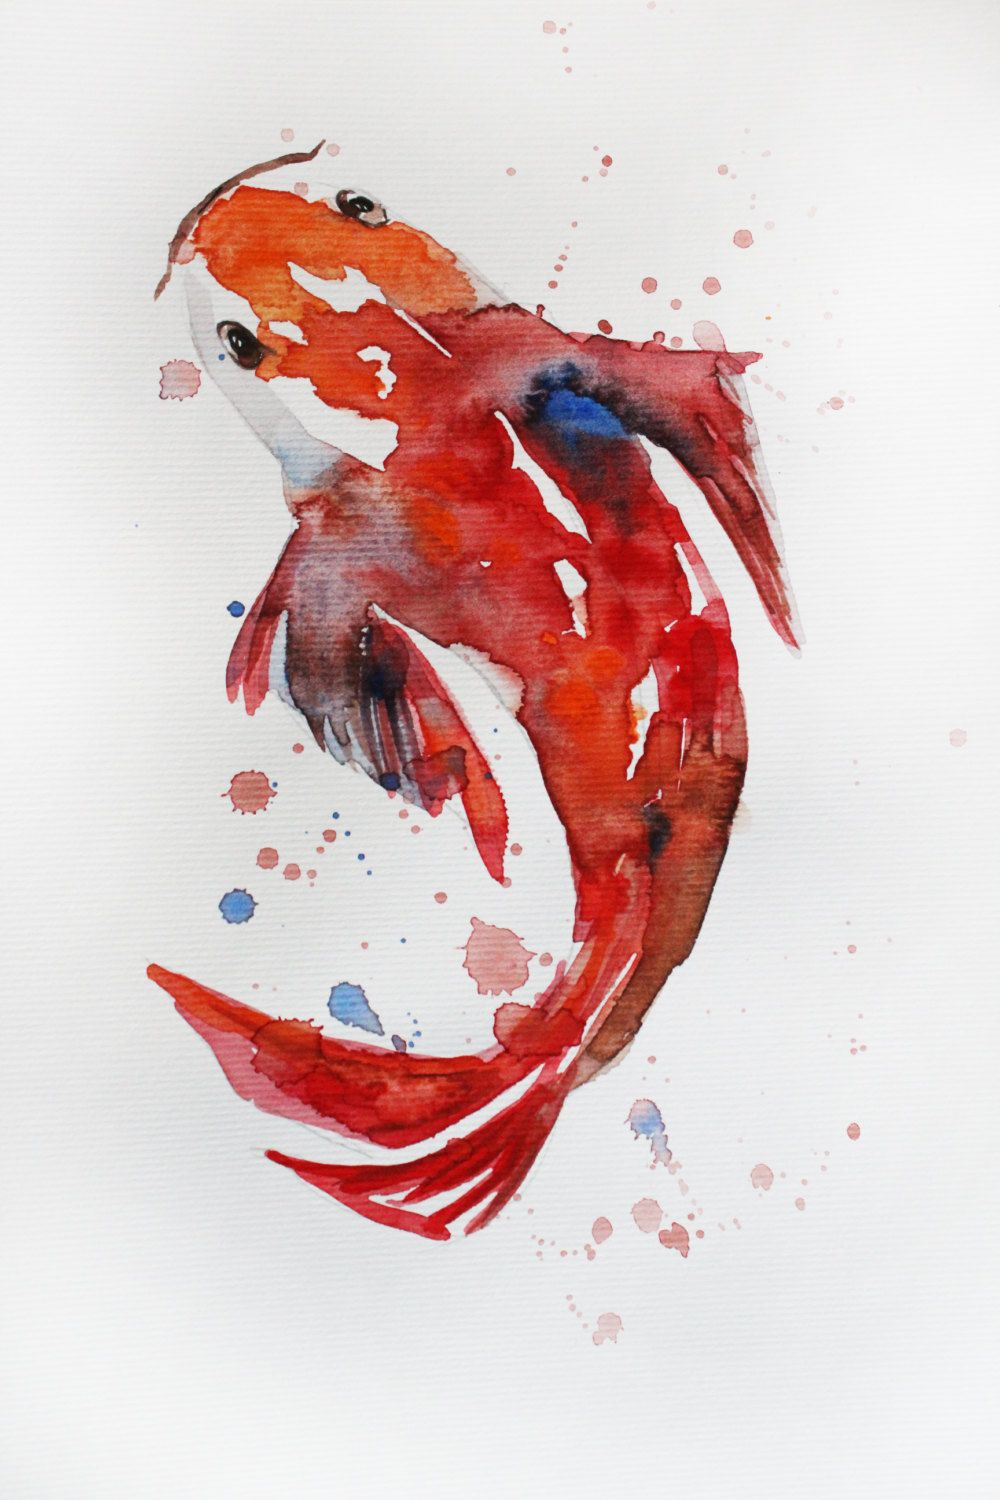 Pin By Hana Matsumoto On Tatoo In 2020 Watercolor Fish Koi